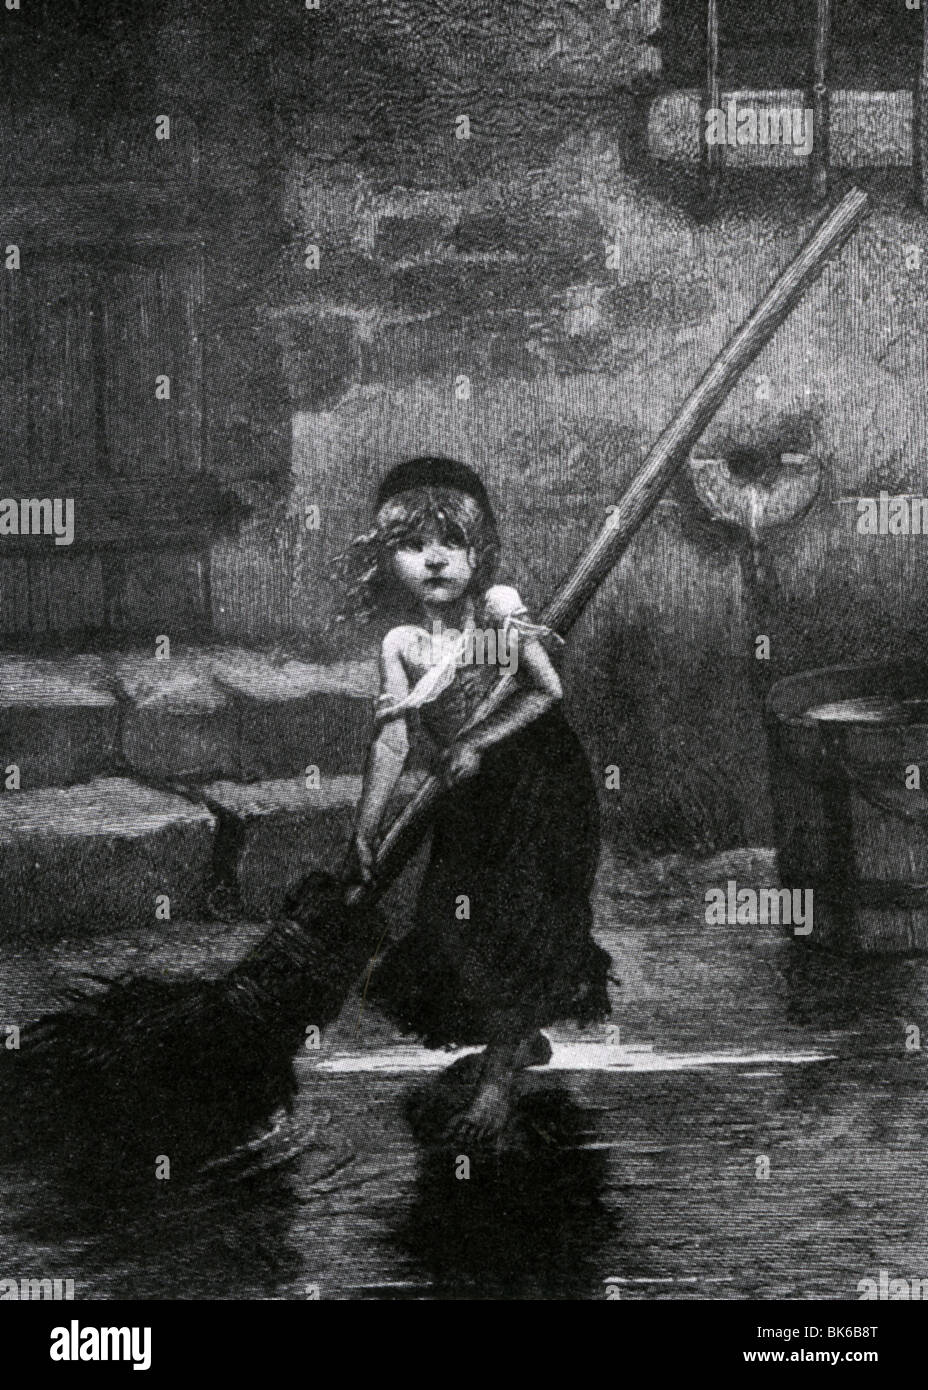 Image result for le miserables street urchin with broom""